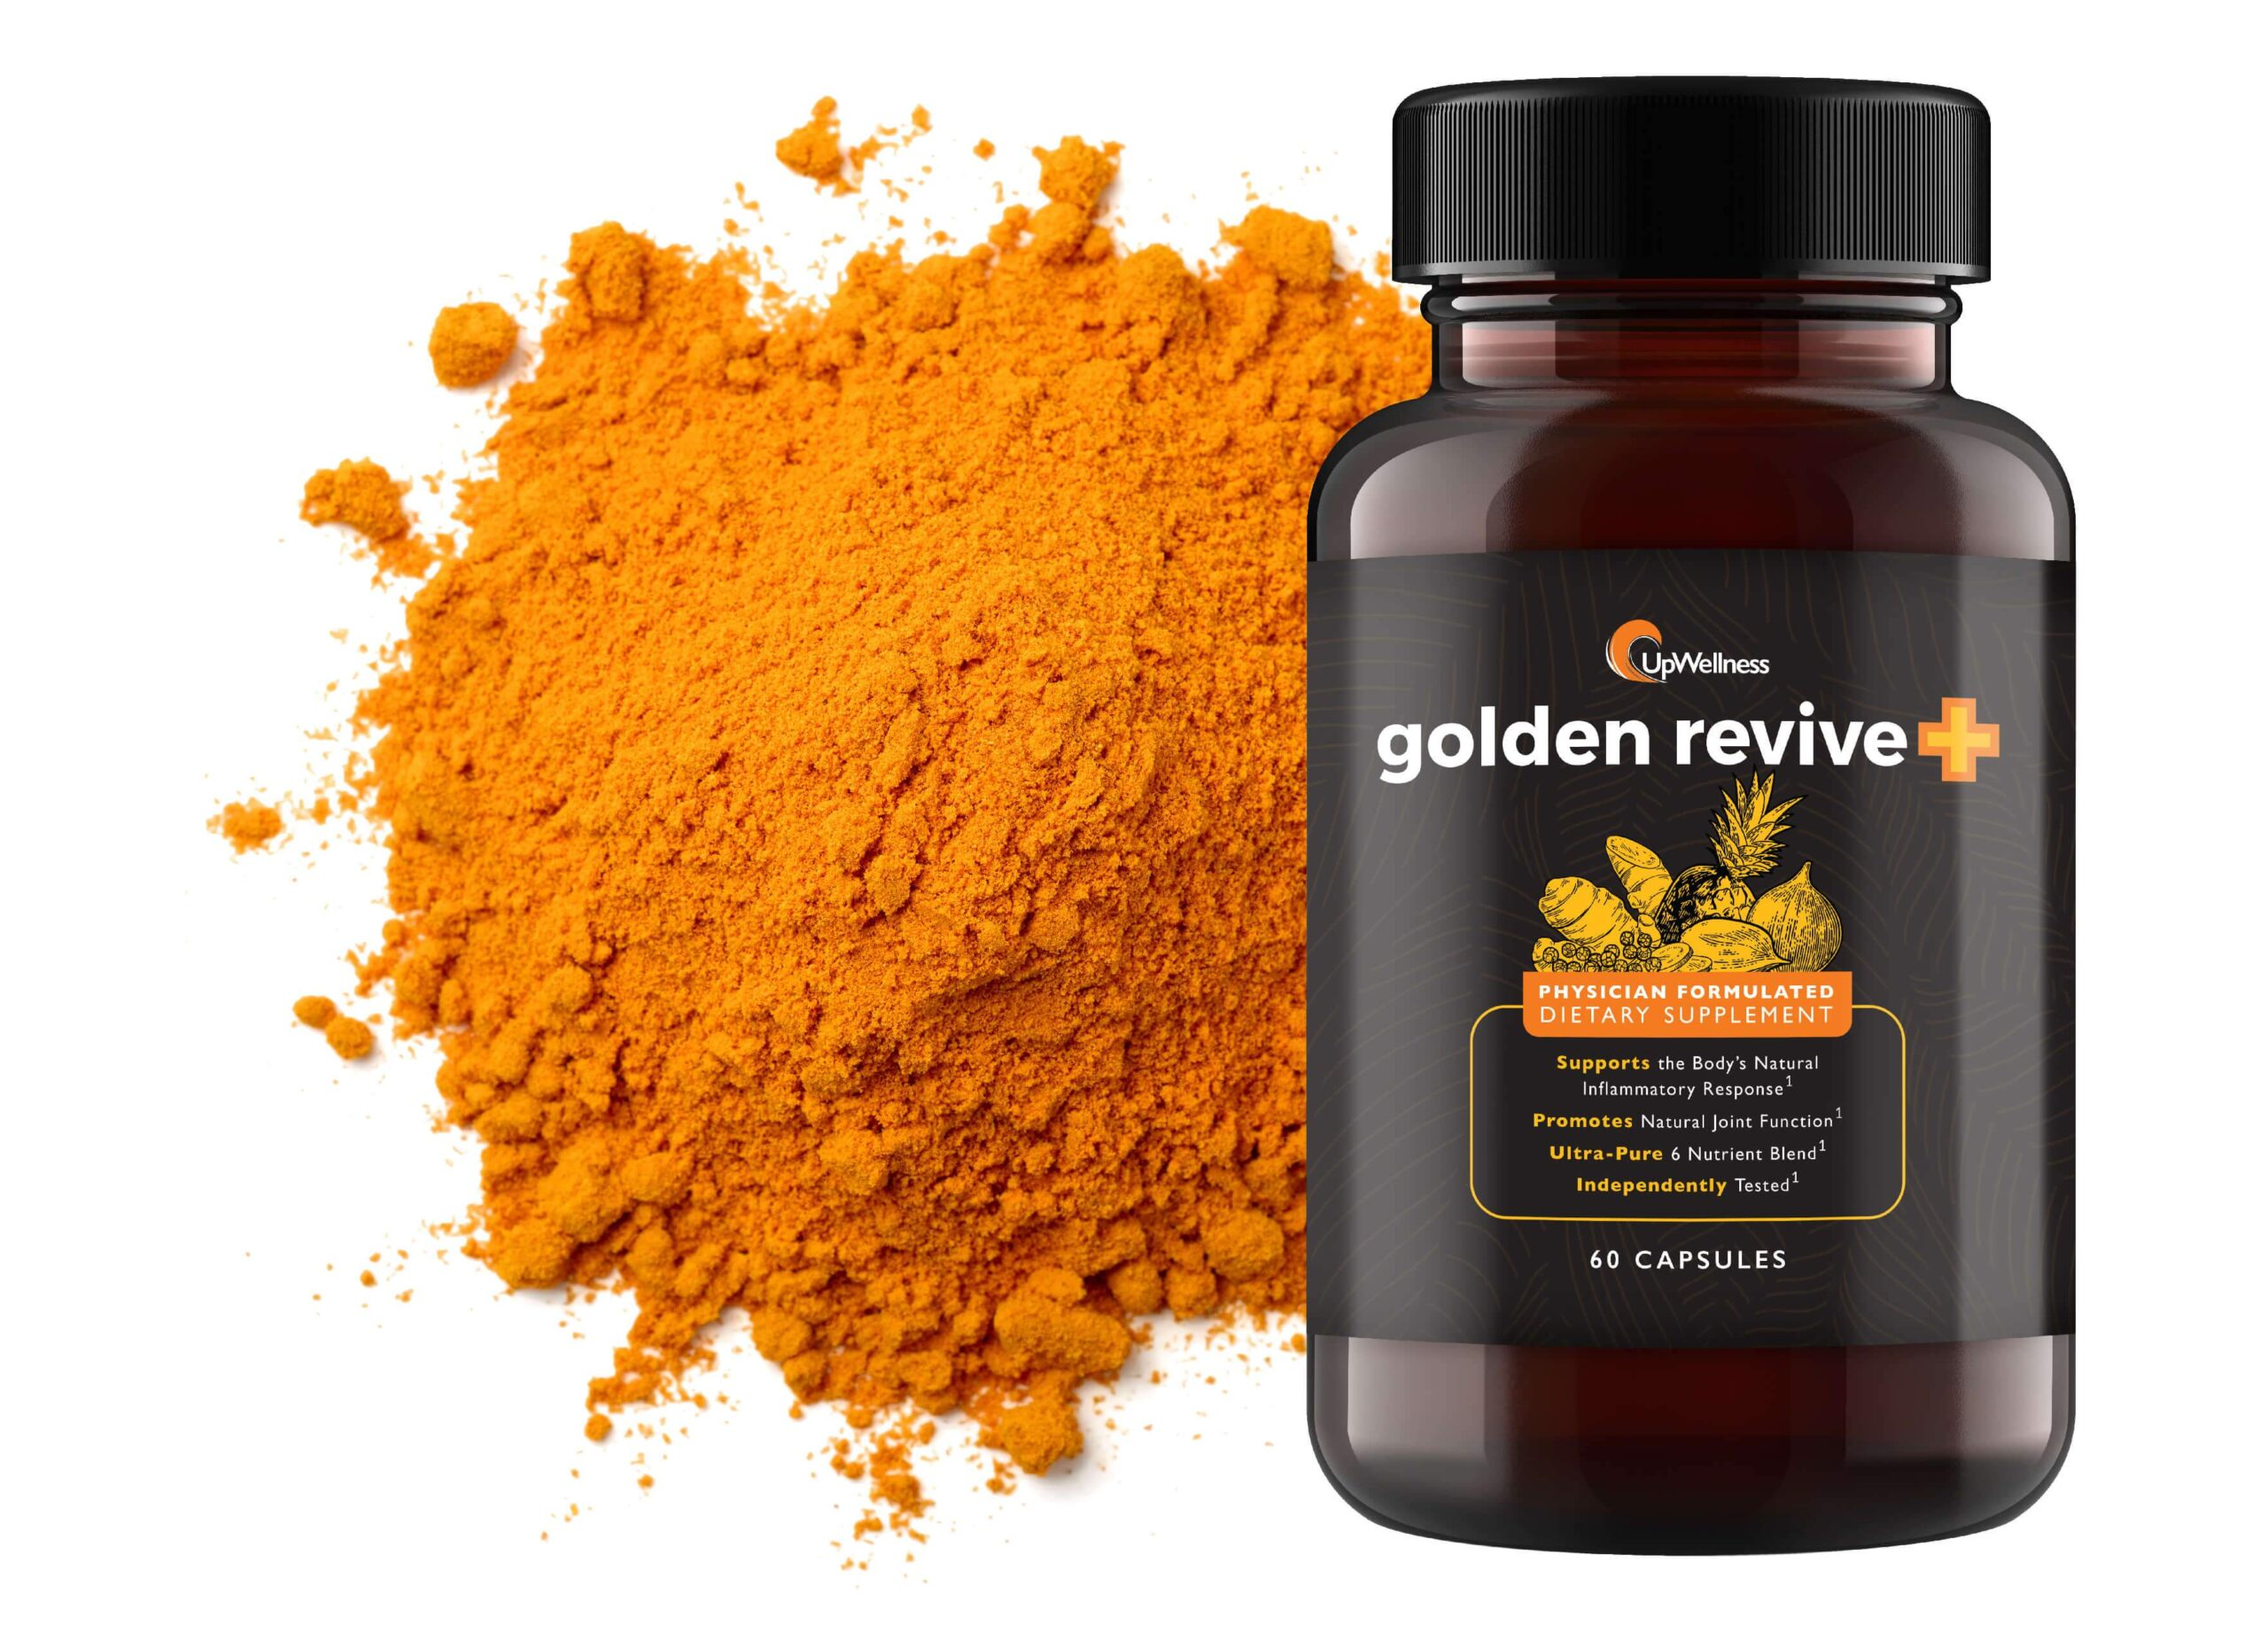 Review of Golden Revive Plus : Scam, Side Effects, Does it Work?